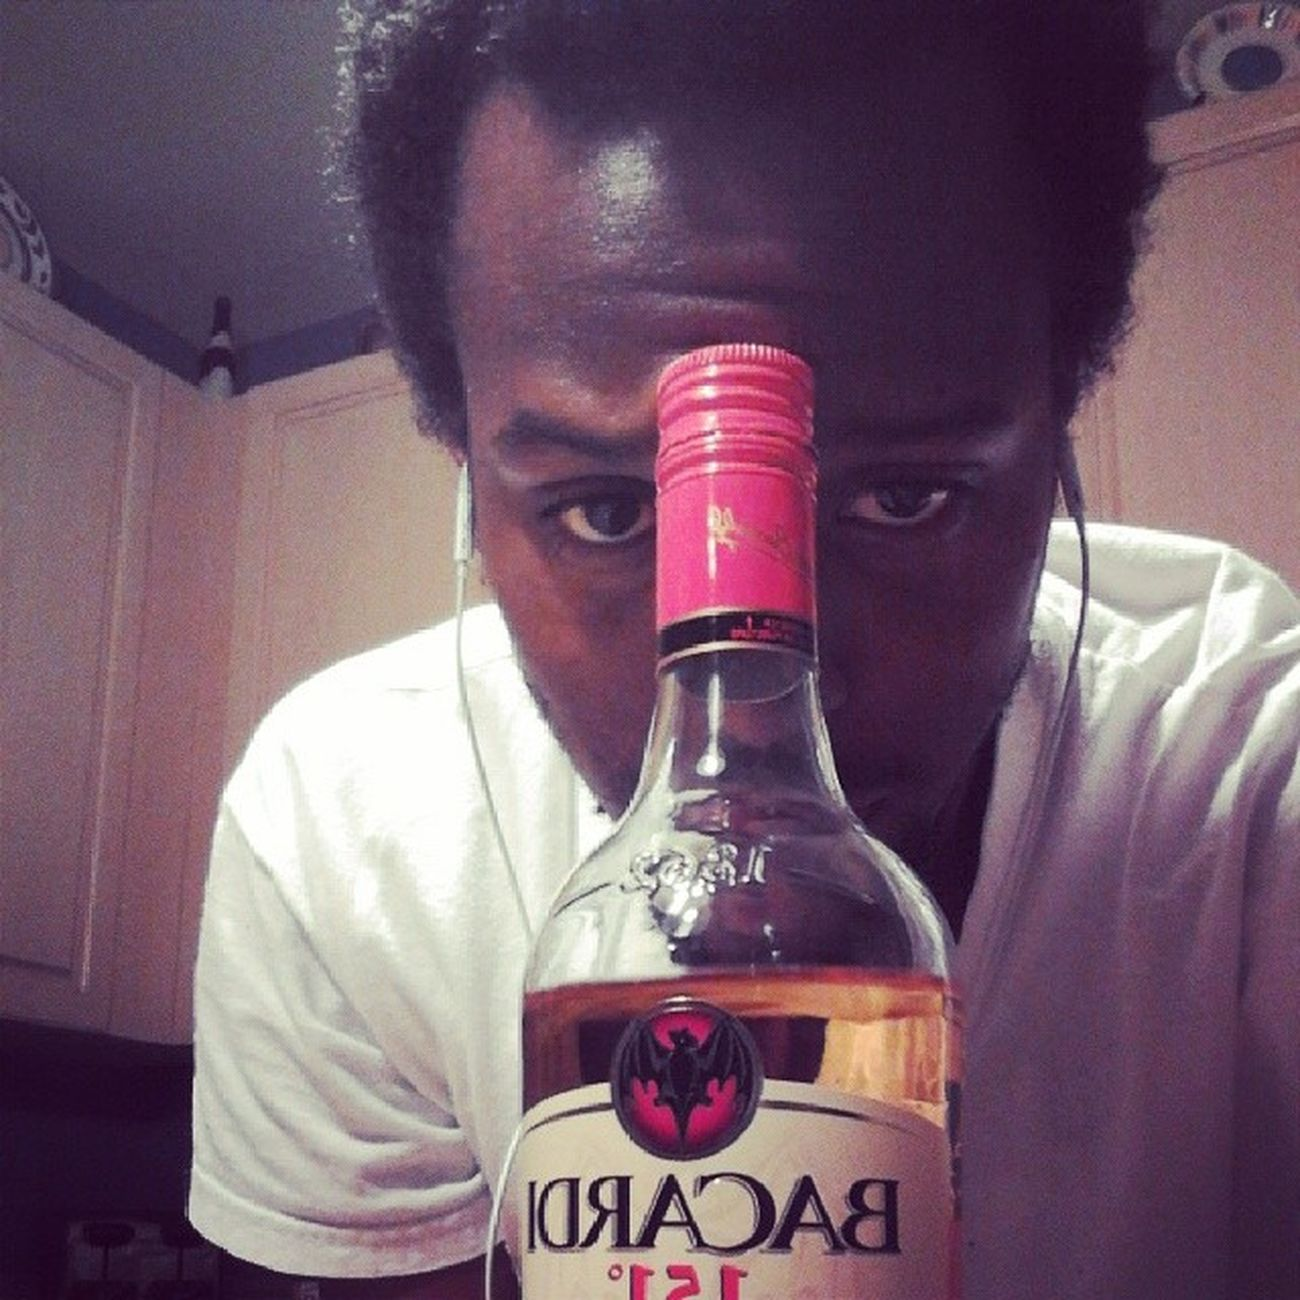 I'm gonna start drinking the night away Bacardi  151 Puertoricanrum